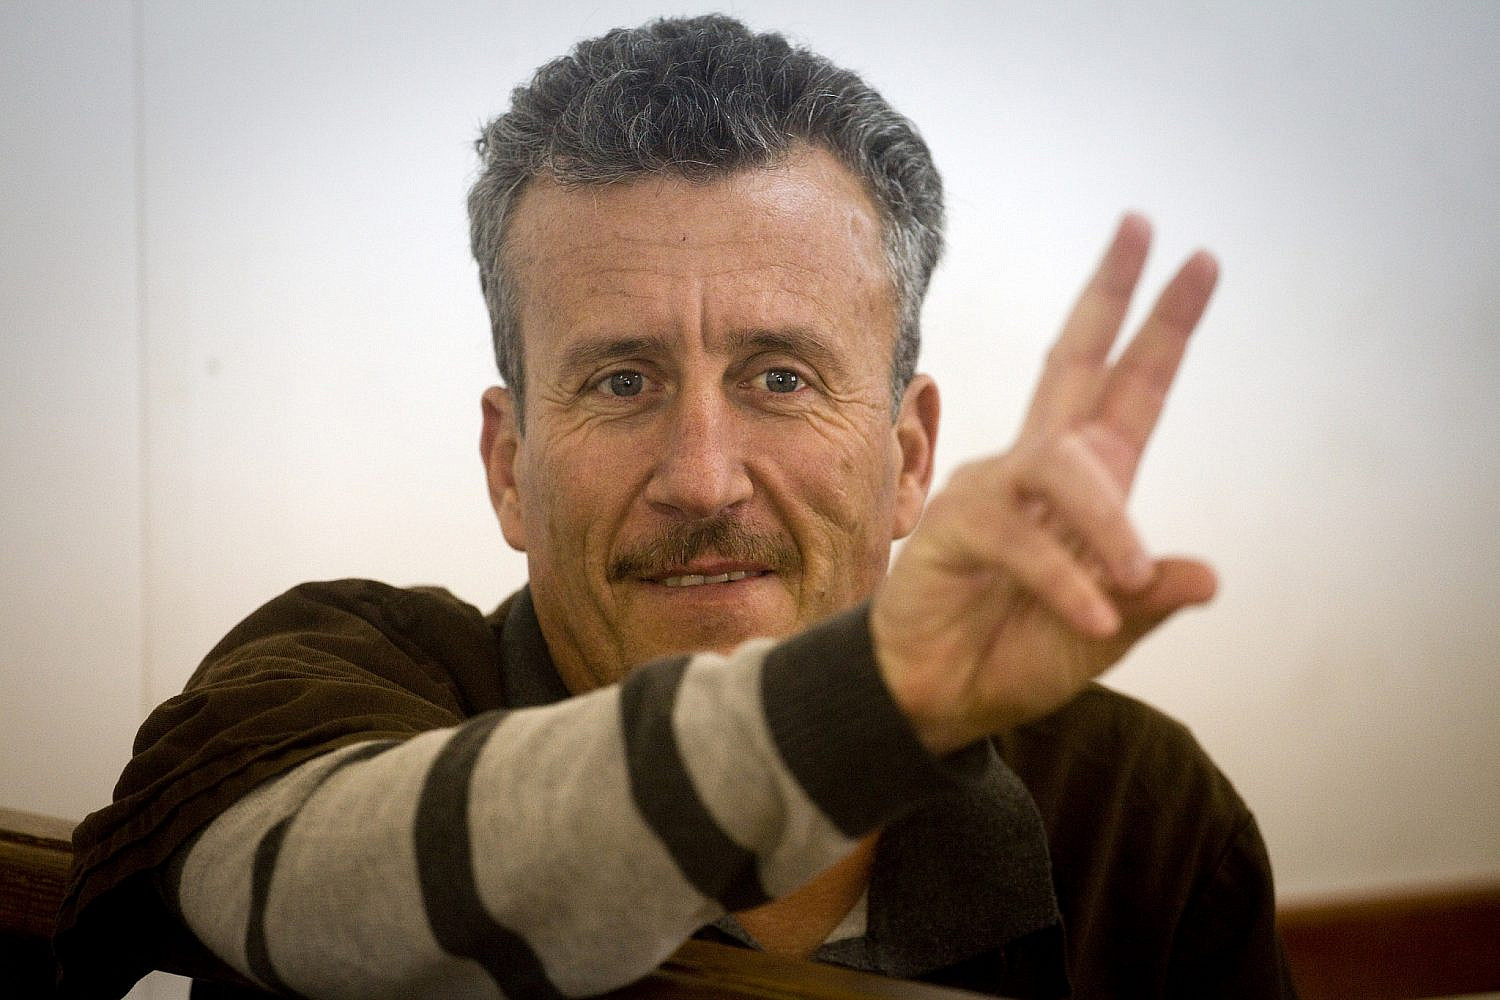 Bassem Tamimi gestures a peace sign during his hearing in an Israeli military court. (Oren Ziv)